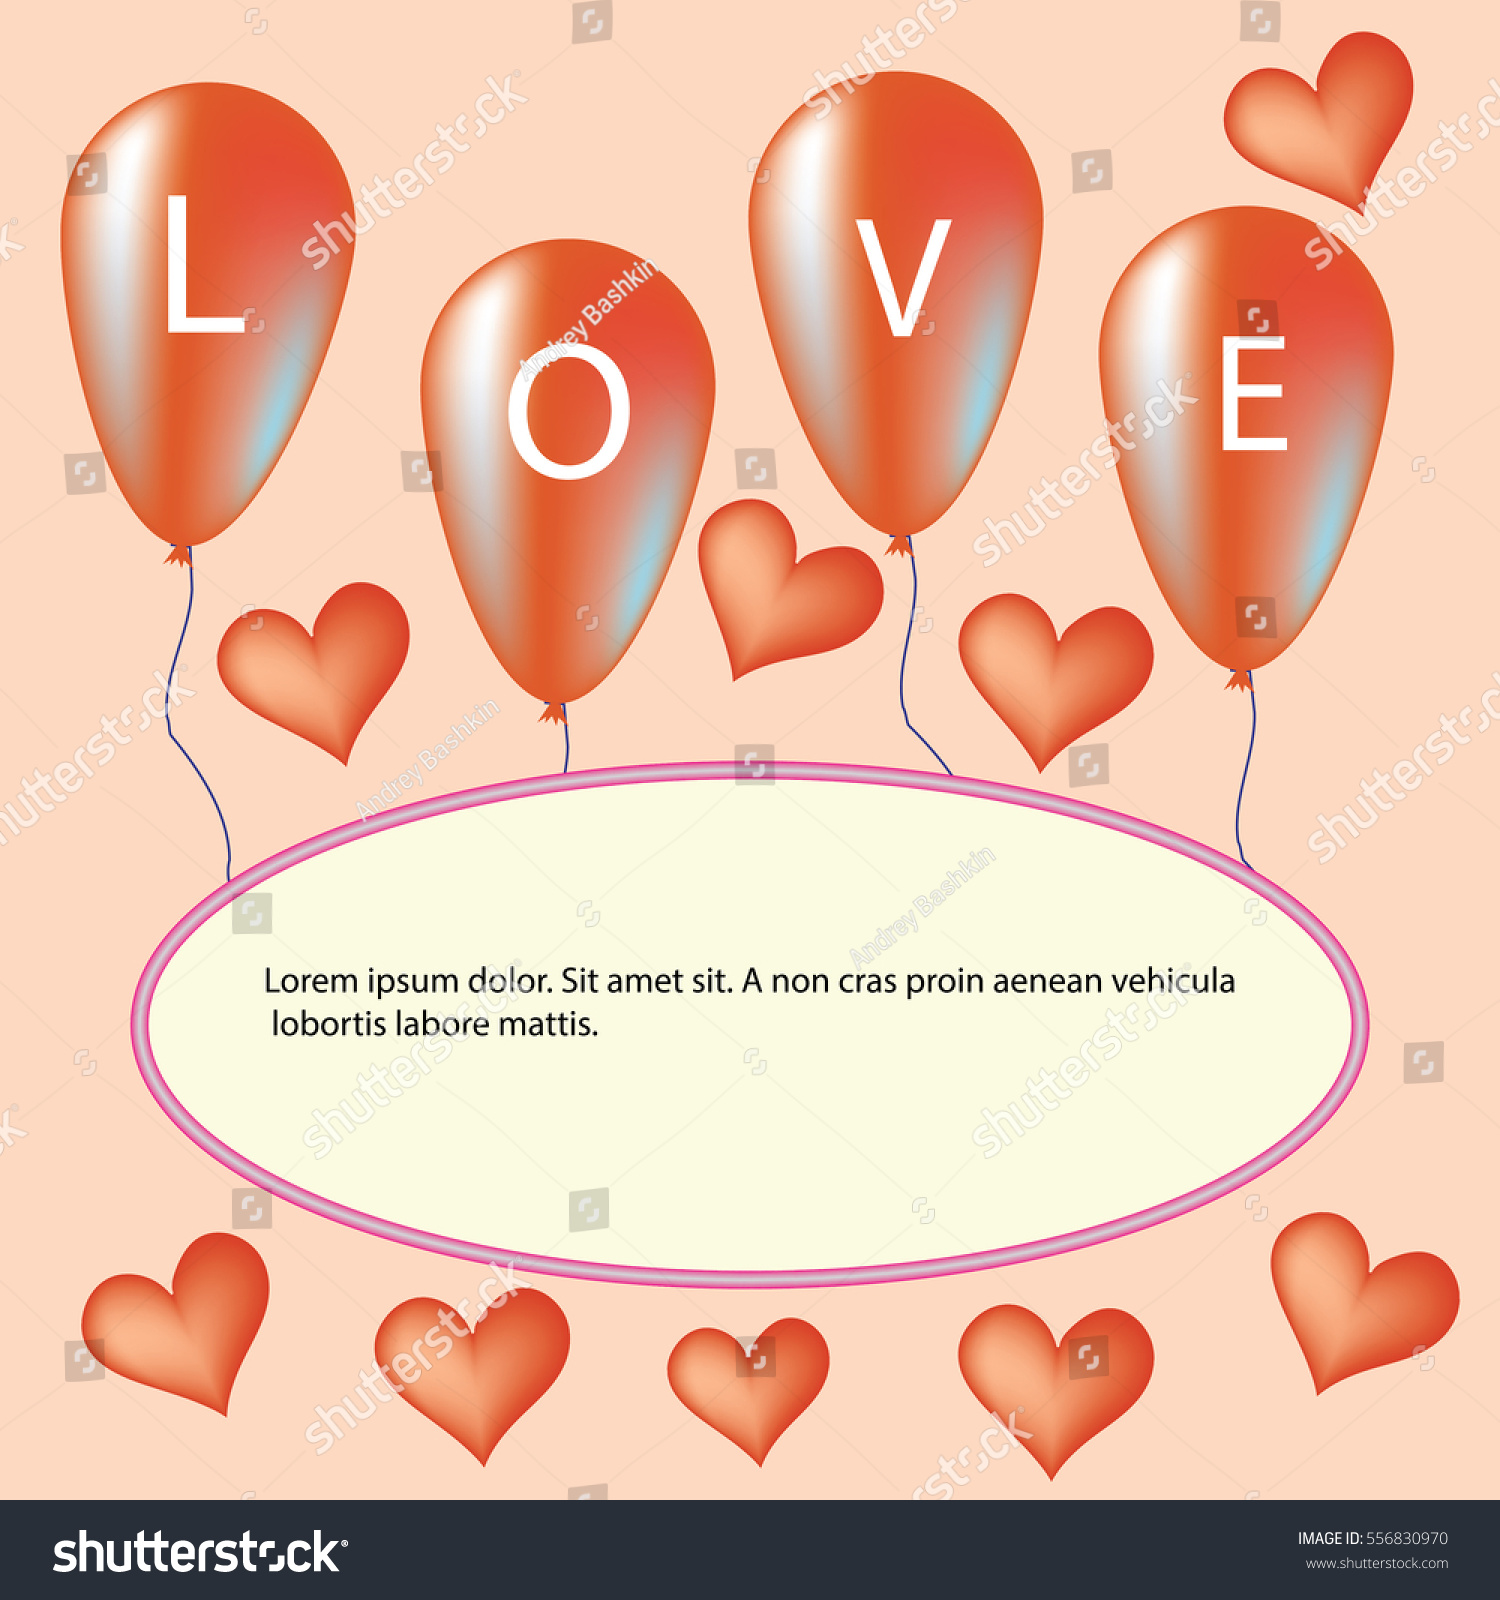 Love You Valentine's Day Greeting card, vector illustration #556830970